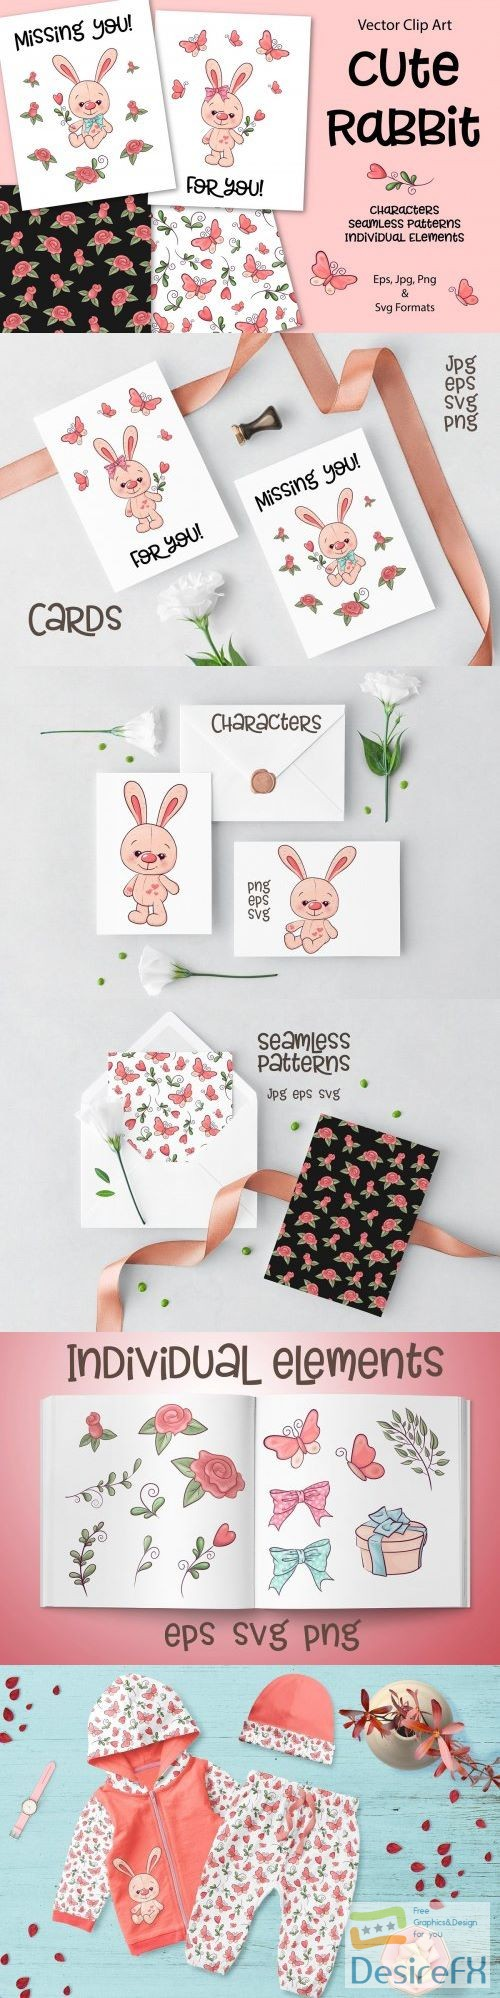 Cute Rabbit - vector clip art - 3717345